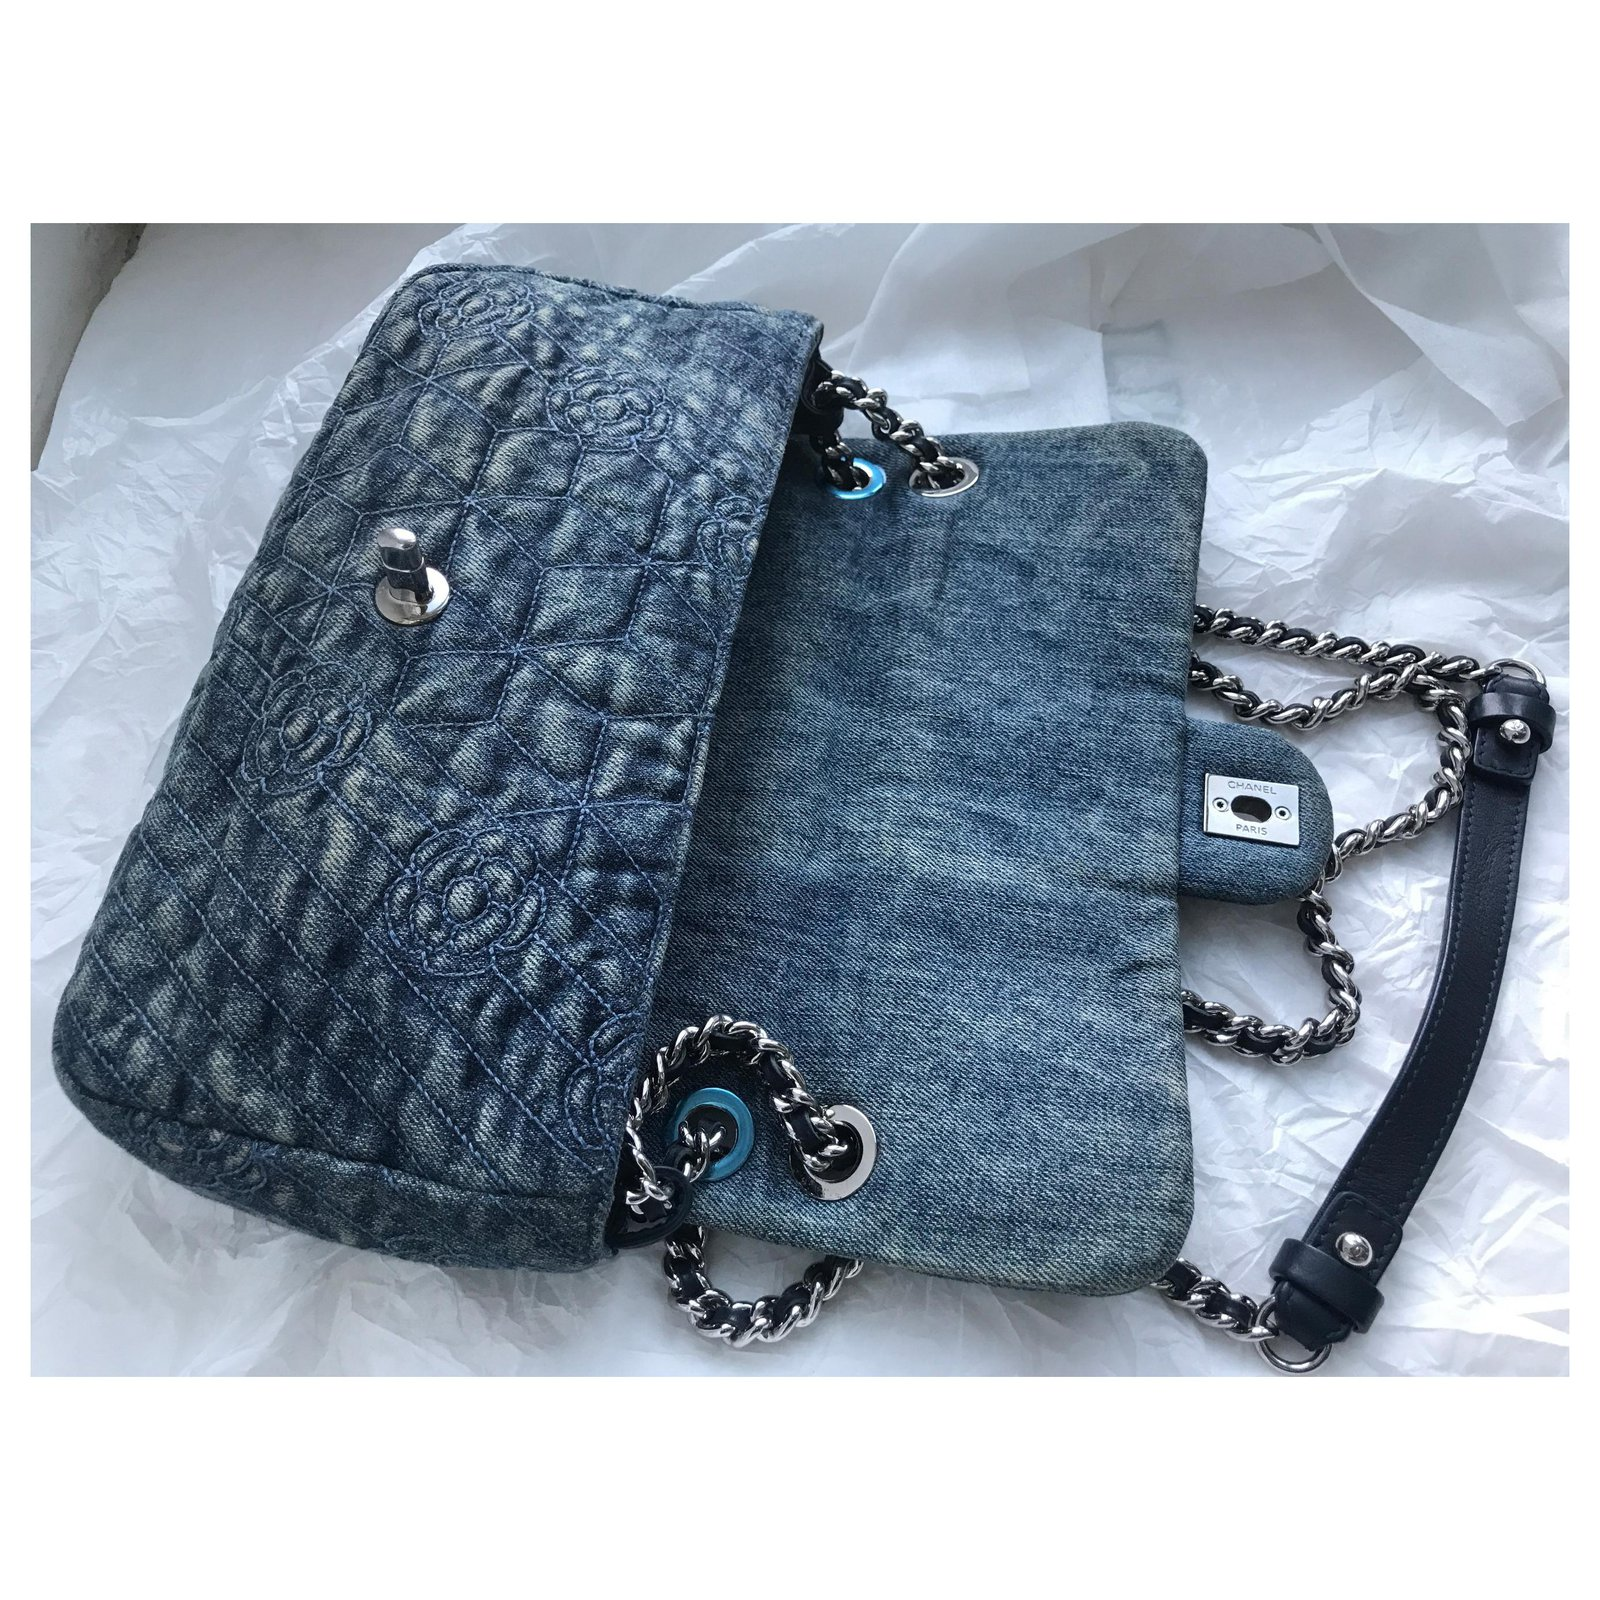 34c5df8a5080 Facebook · Pin This. Chanel Crossbody denim flap bag Handbags Leather ...